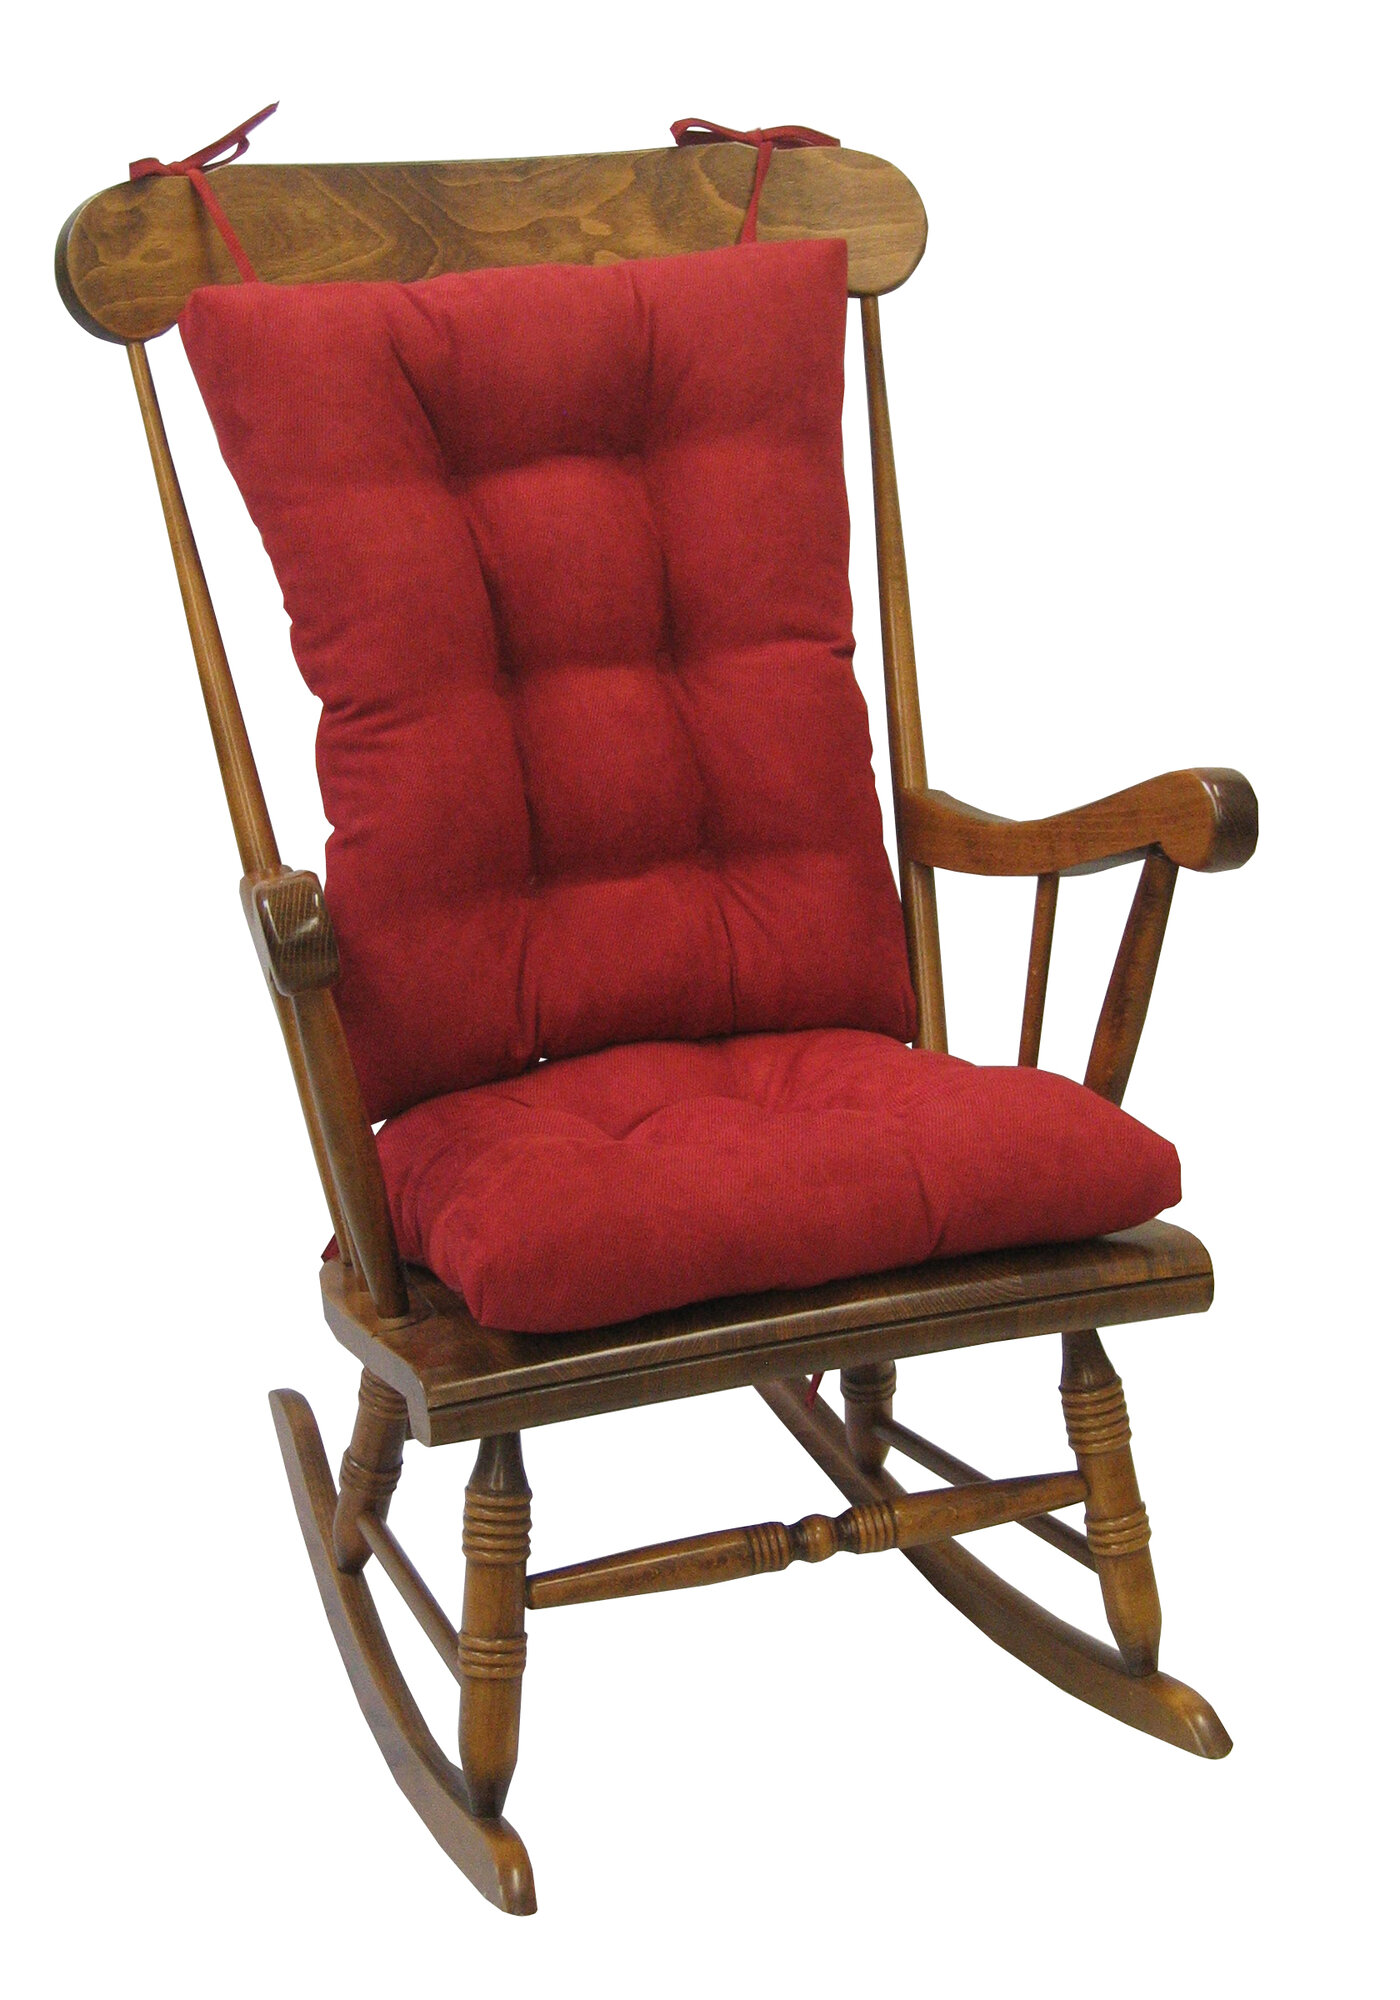 Klear Vu Twillo Outdoor Rocking Chair Cushion EBay